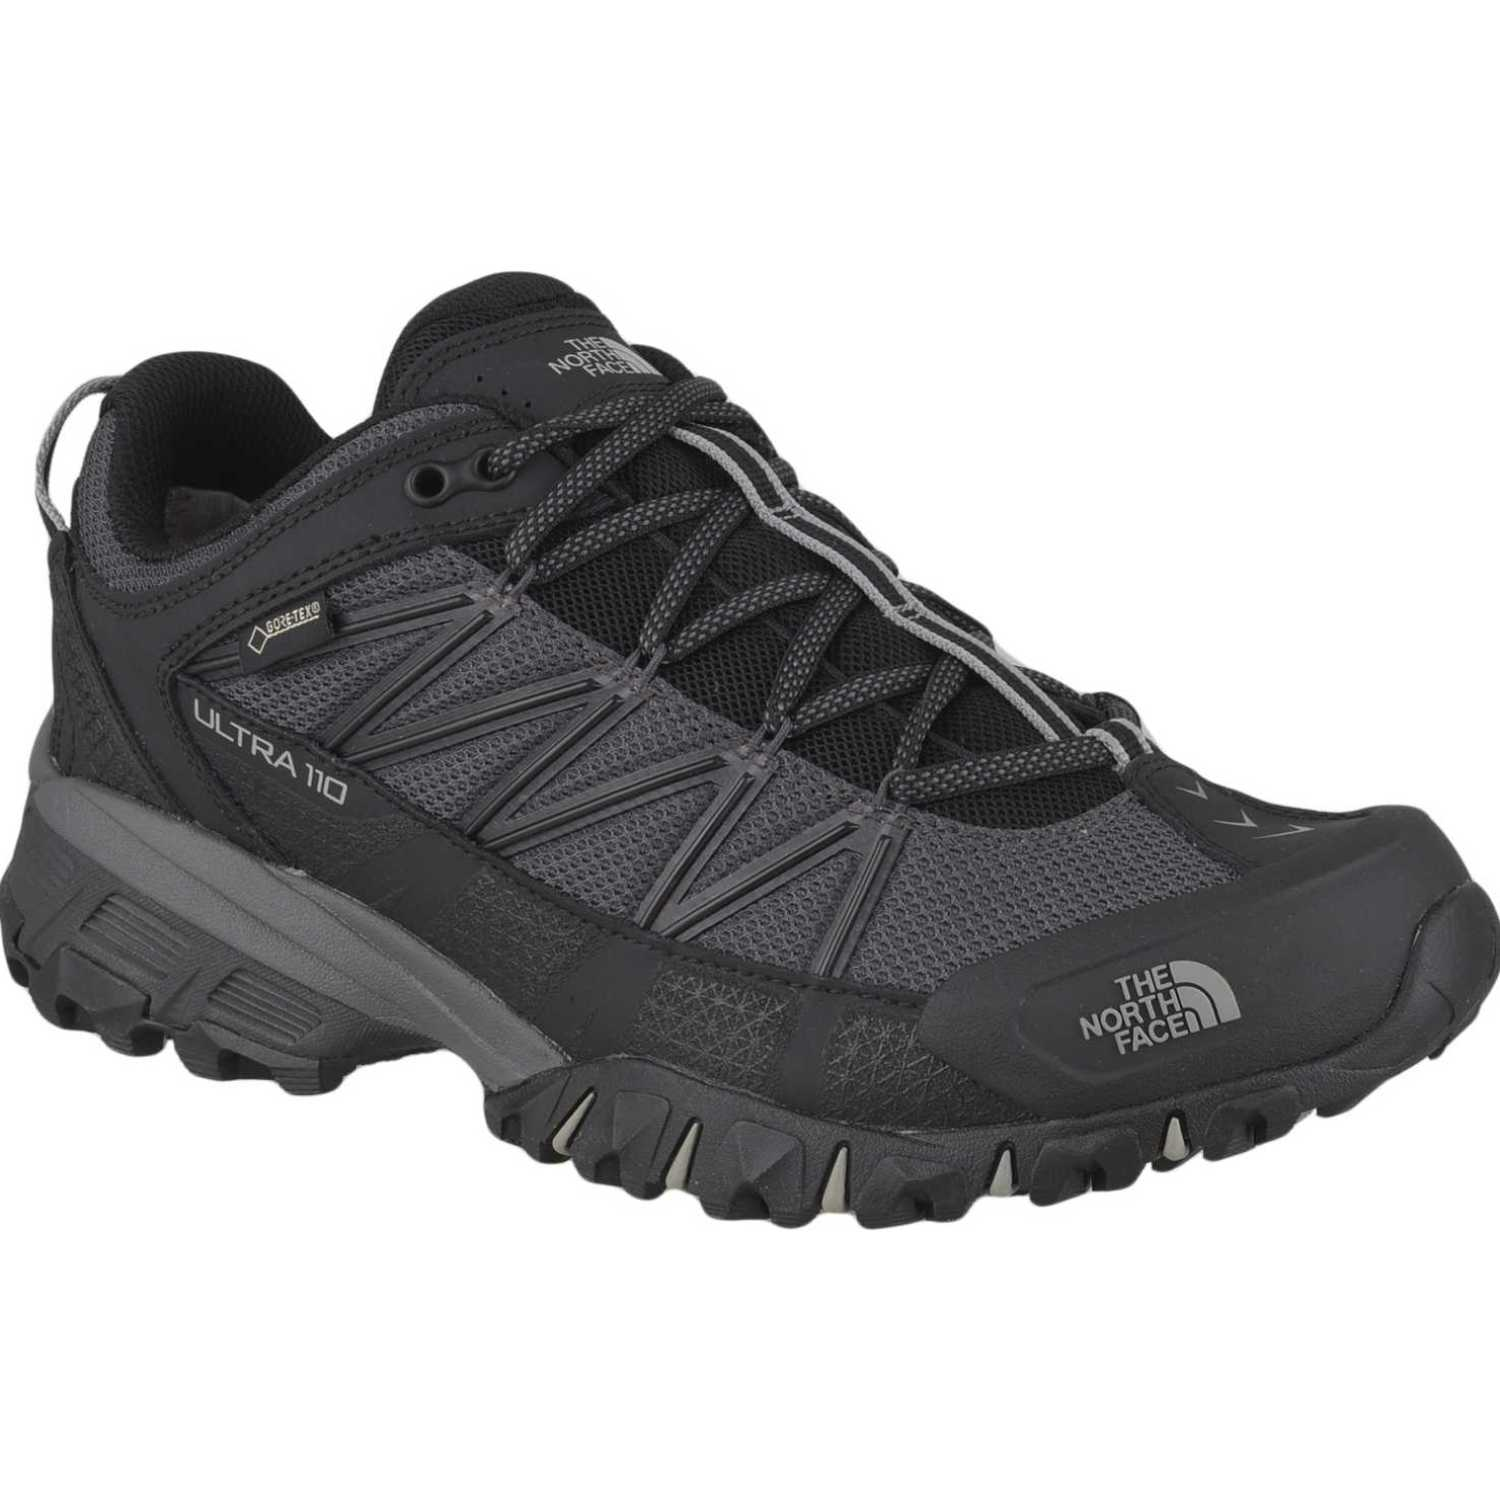 The North Face M Ultra 110 Gtx Negro Zapatos de senderismo